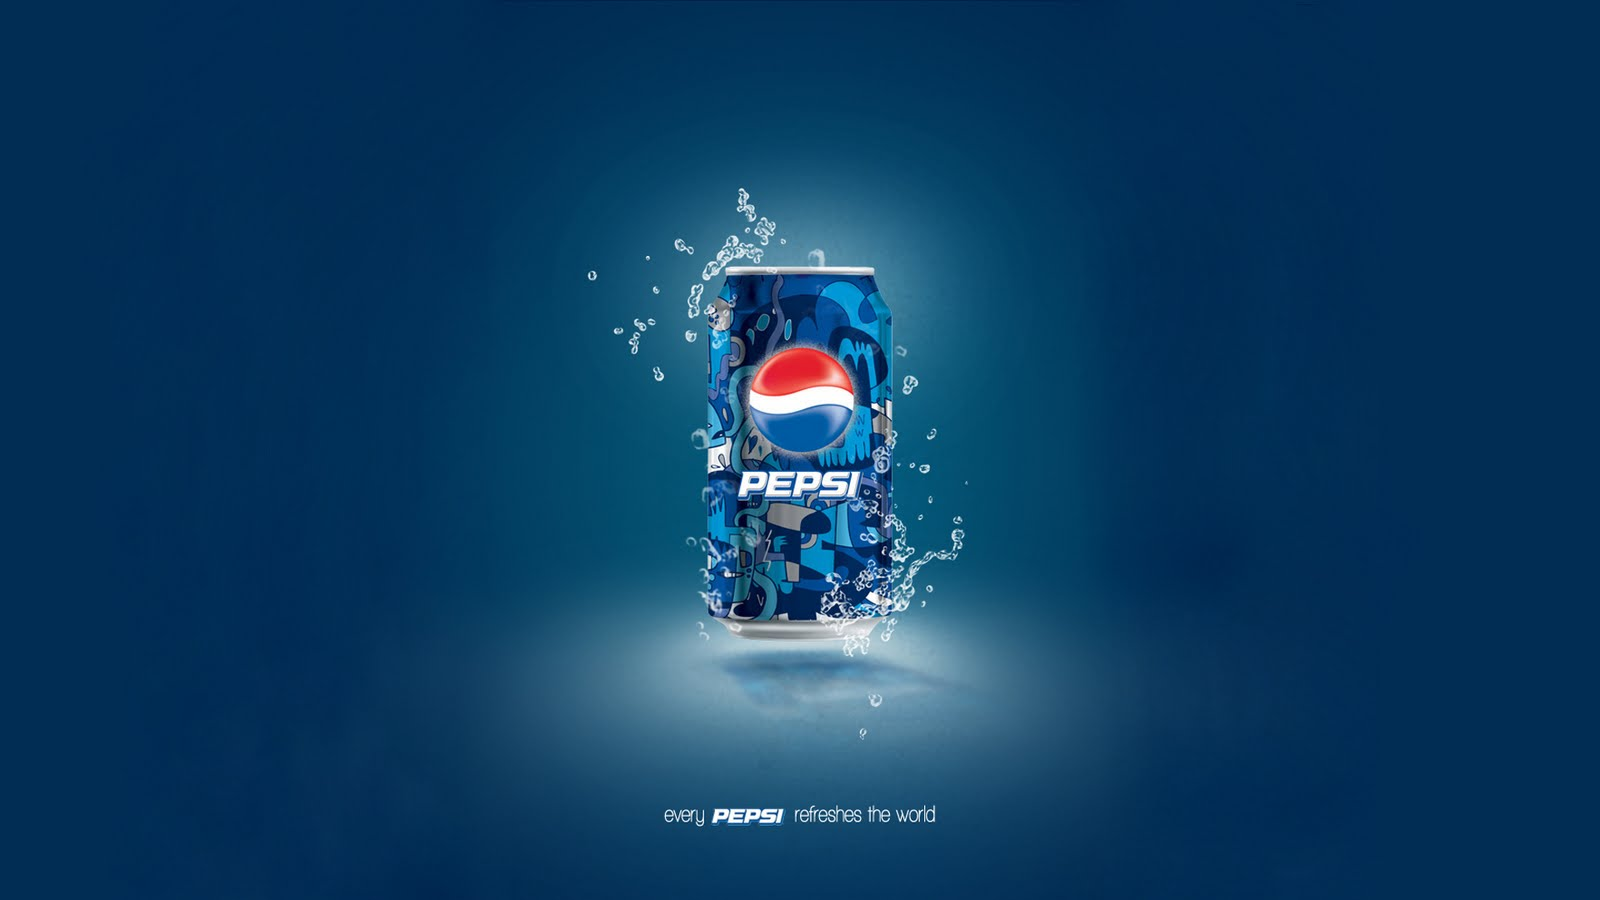 Cool Wallpapers For Phones 3d Pepsi Wallpapers Hd Wallpapers Pulse